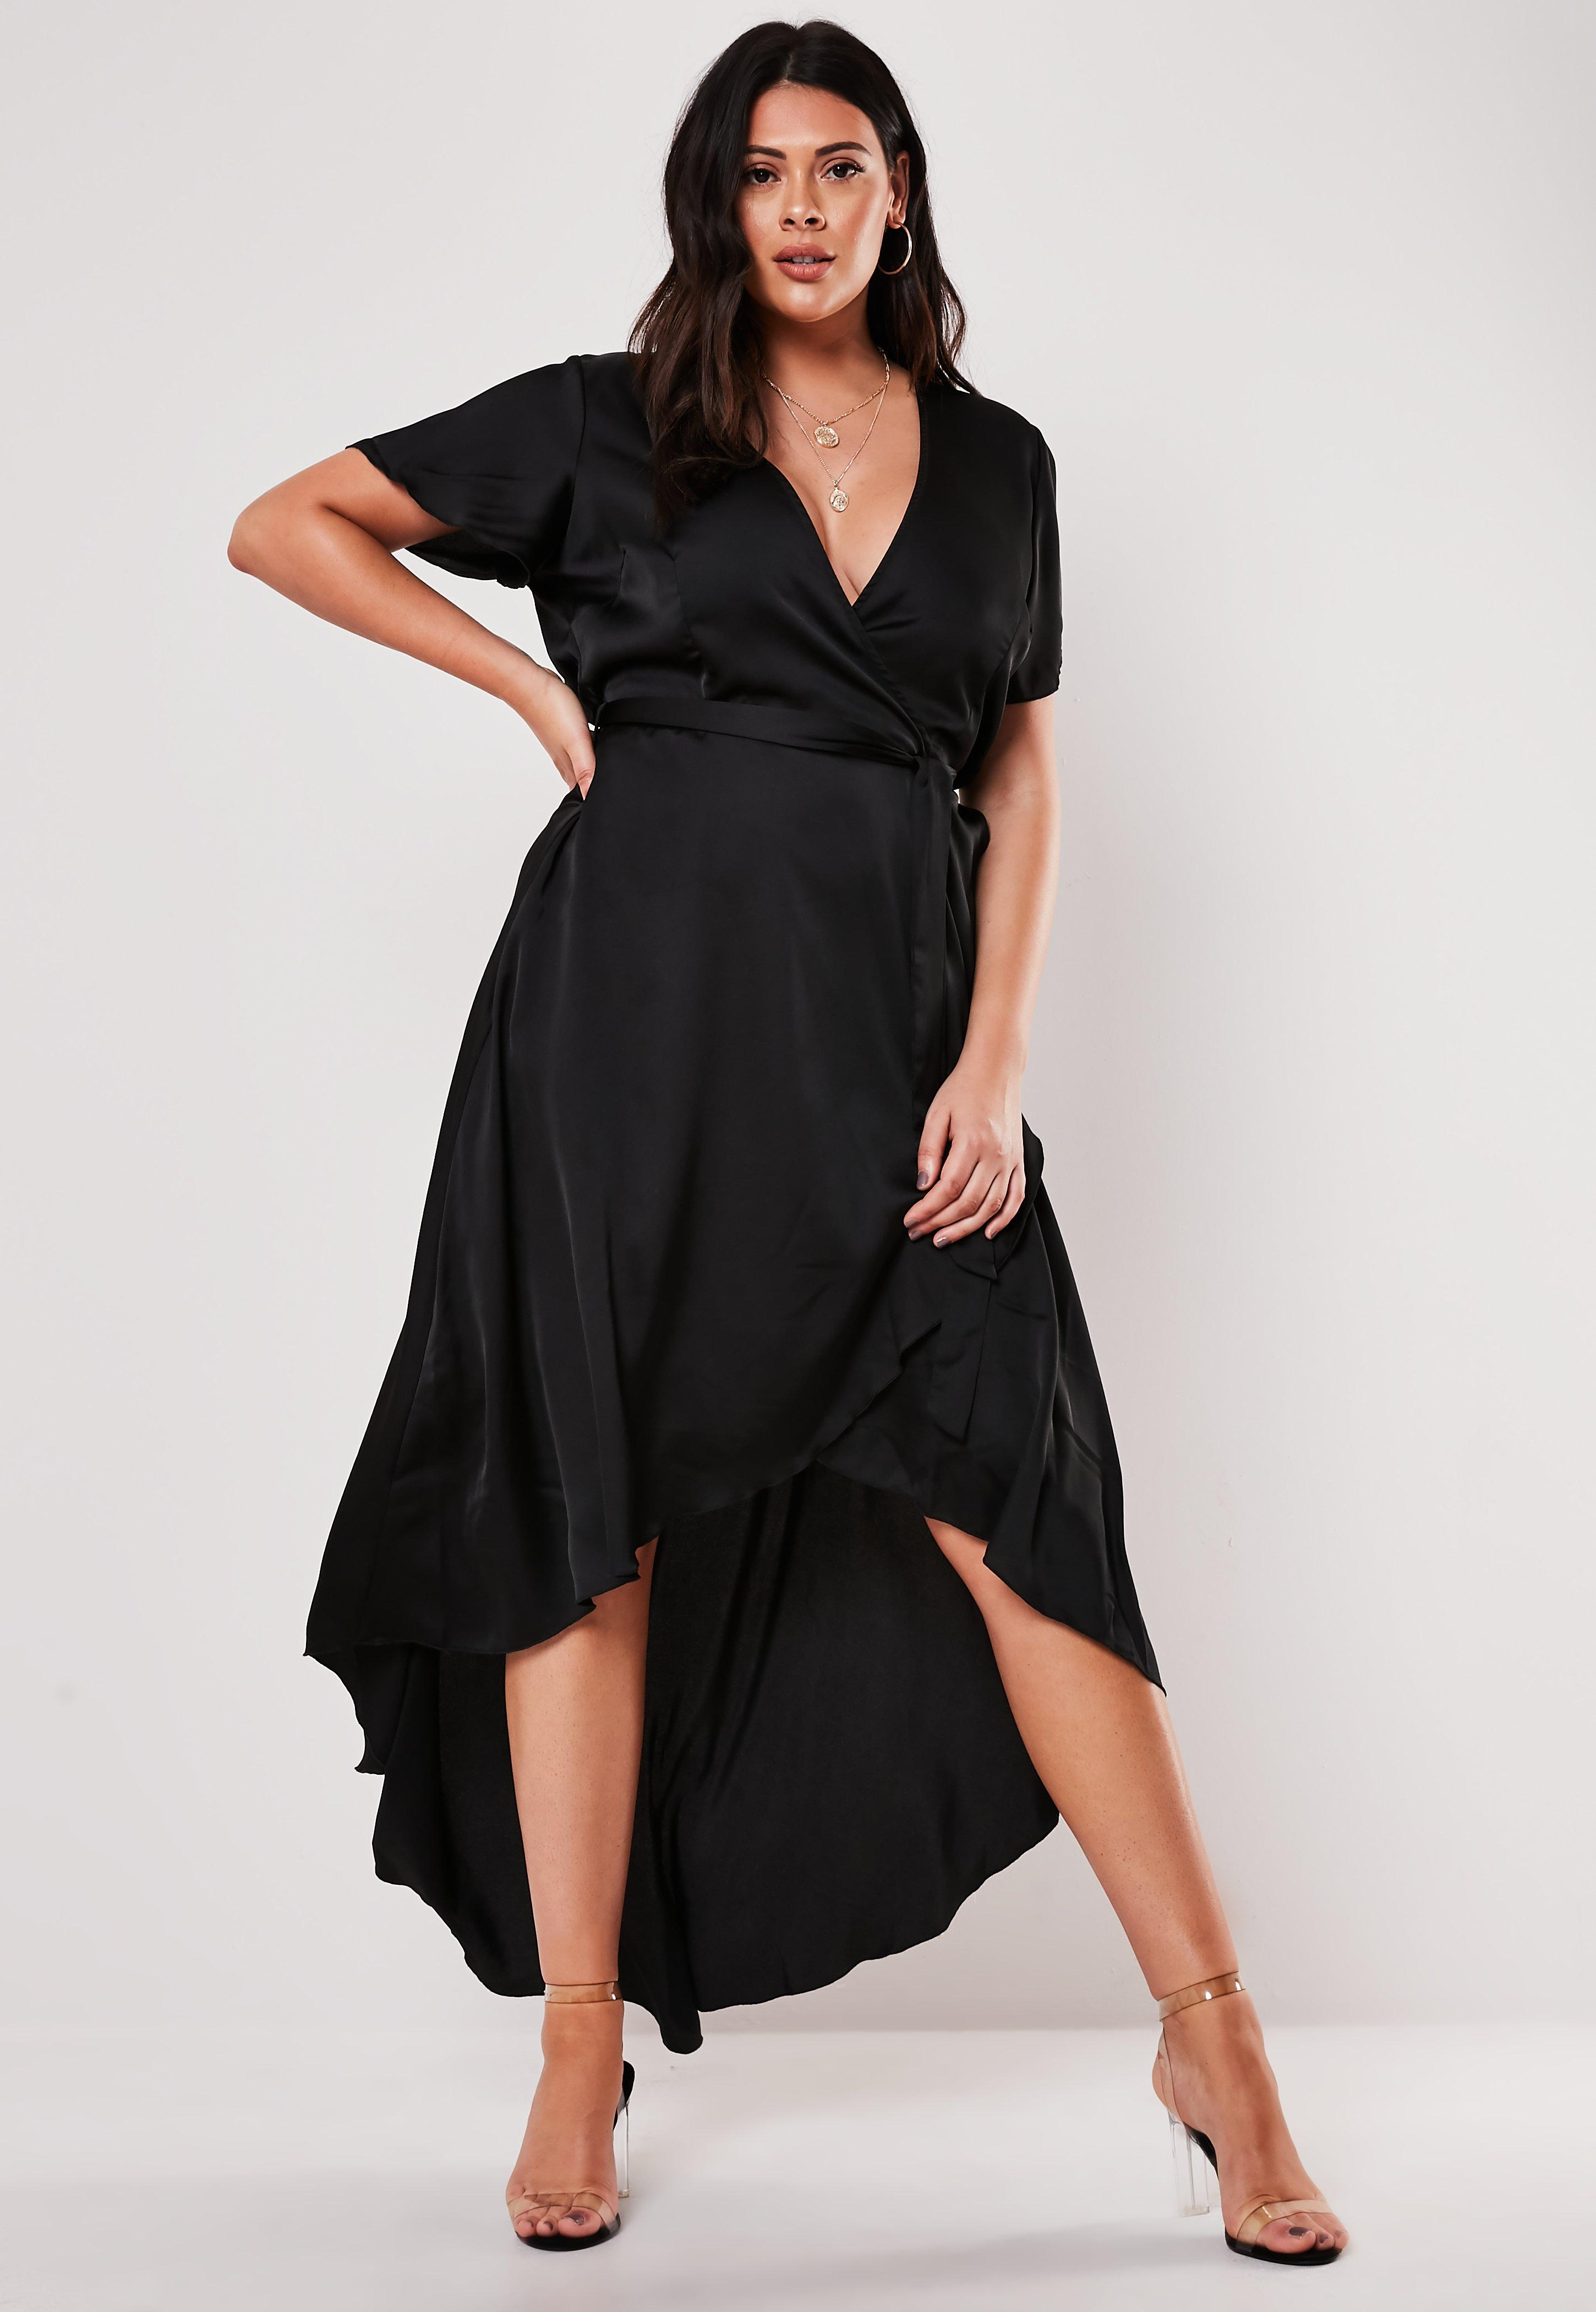 d916c9c089 Robe portefeuille | Achat robe portefeuille femme - Missguided